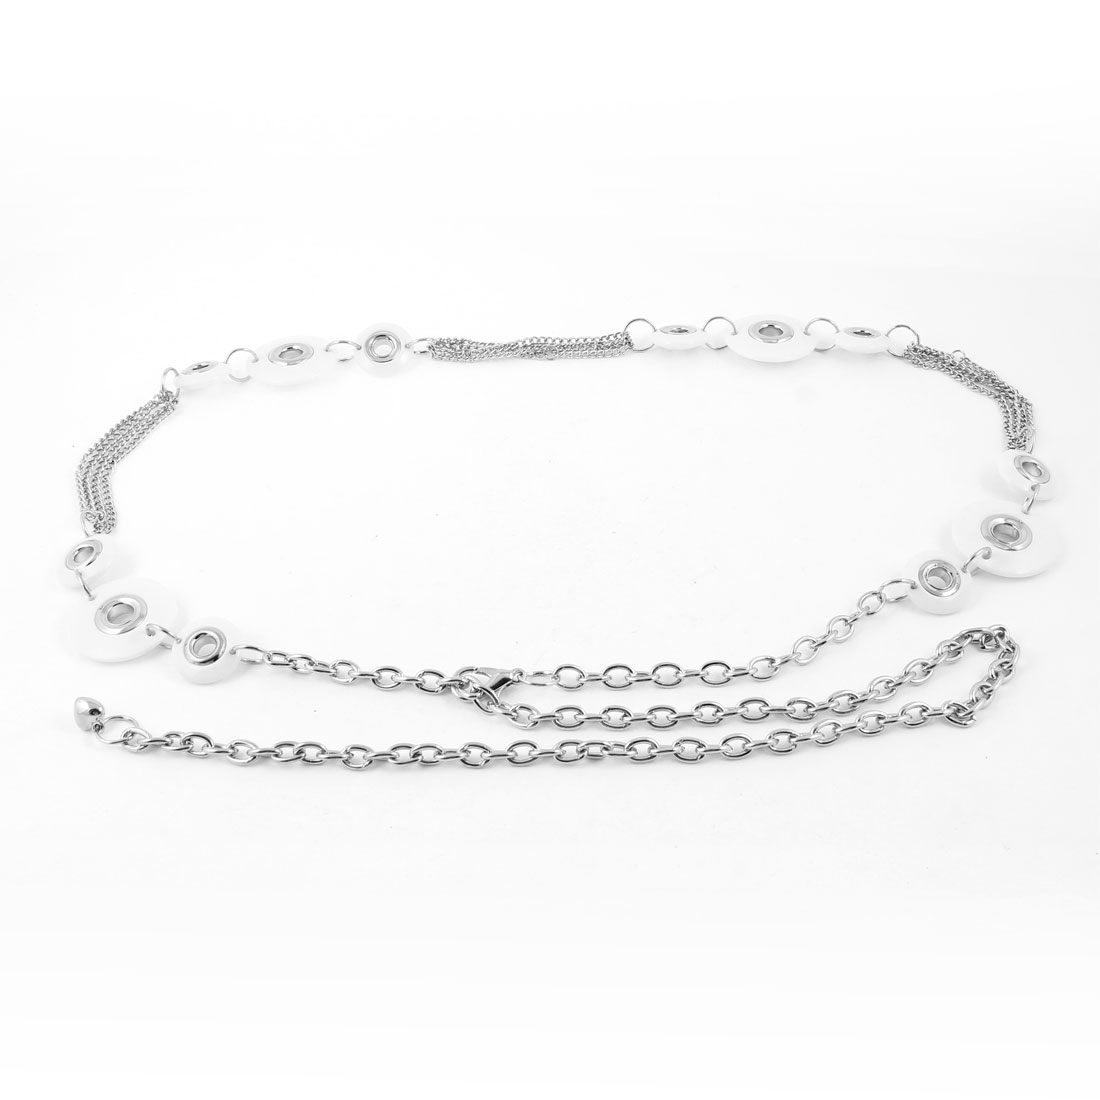 Ladies Hollow out Round Beads Decor Slim Waist Belt Chain Silver Tone White